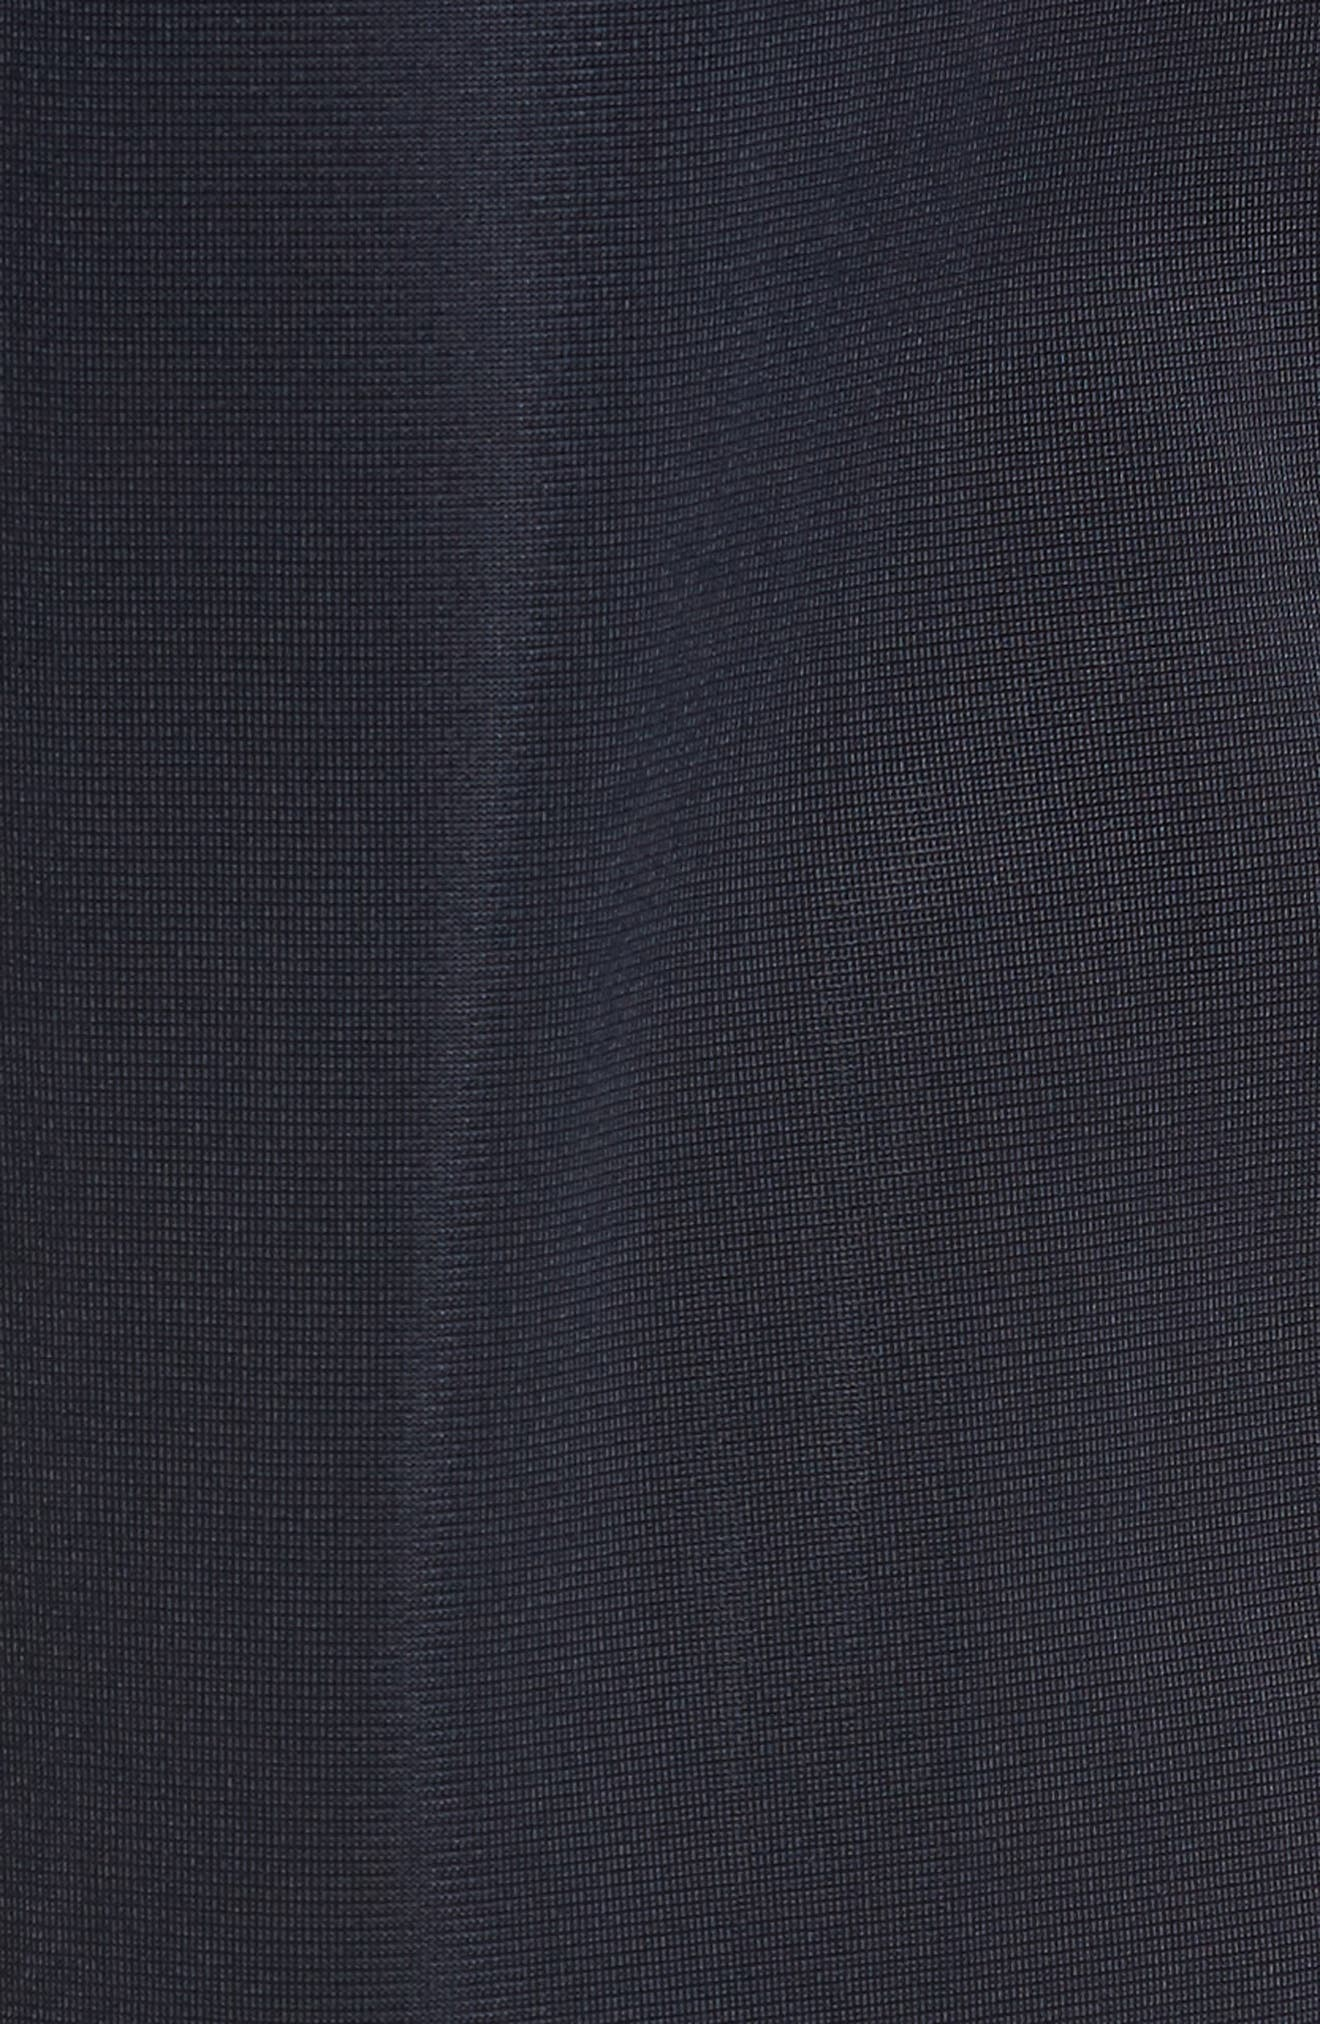 Polywarp Knit Pants,                             Alternate thumbnail 5, color,                             Navy